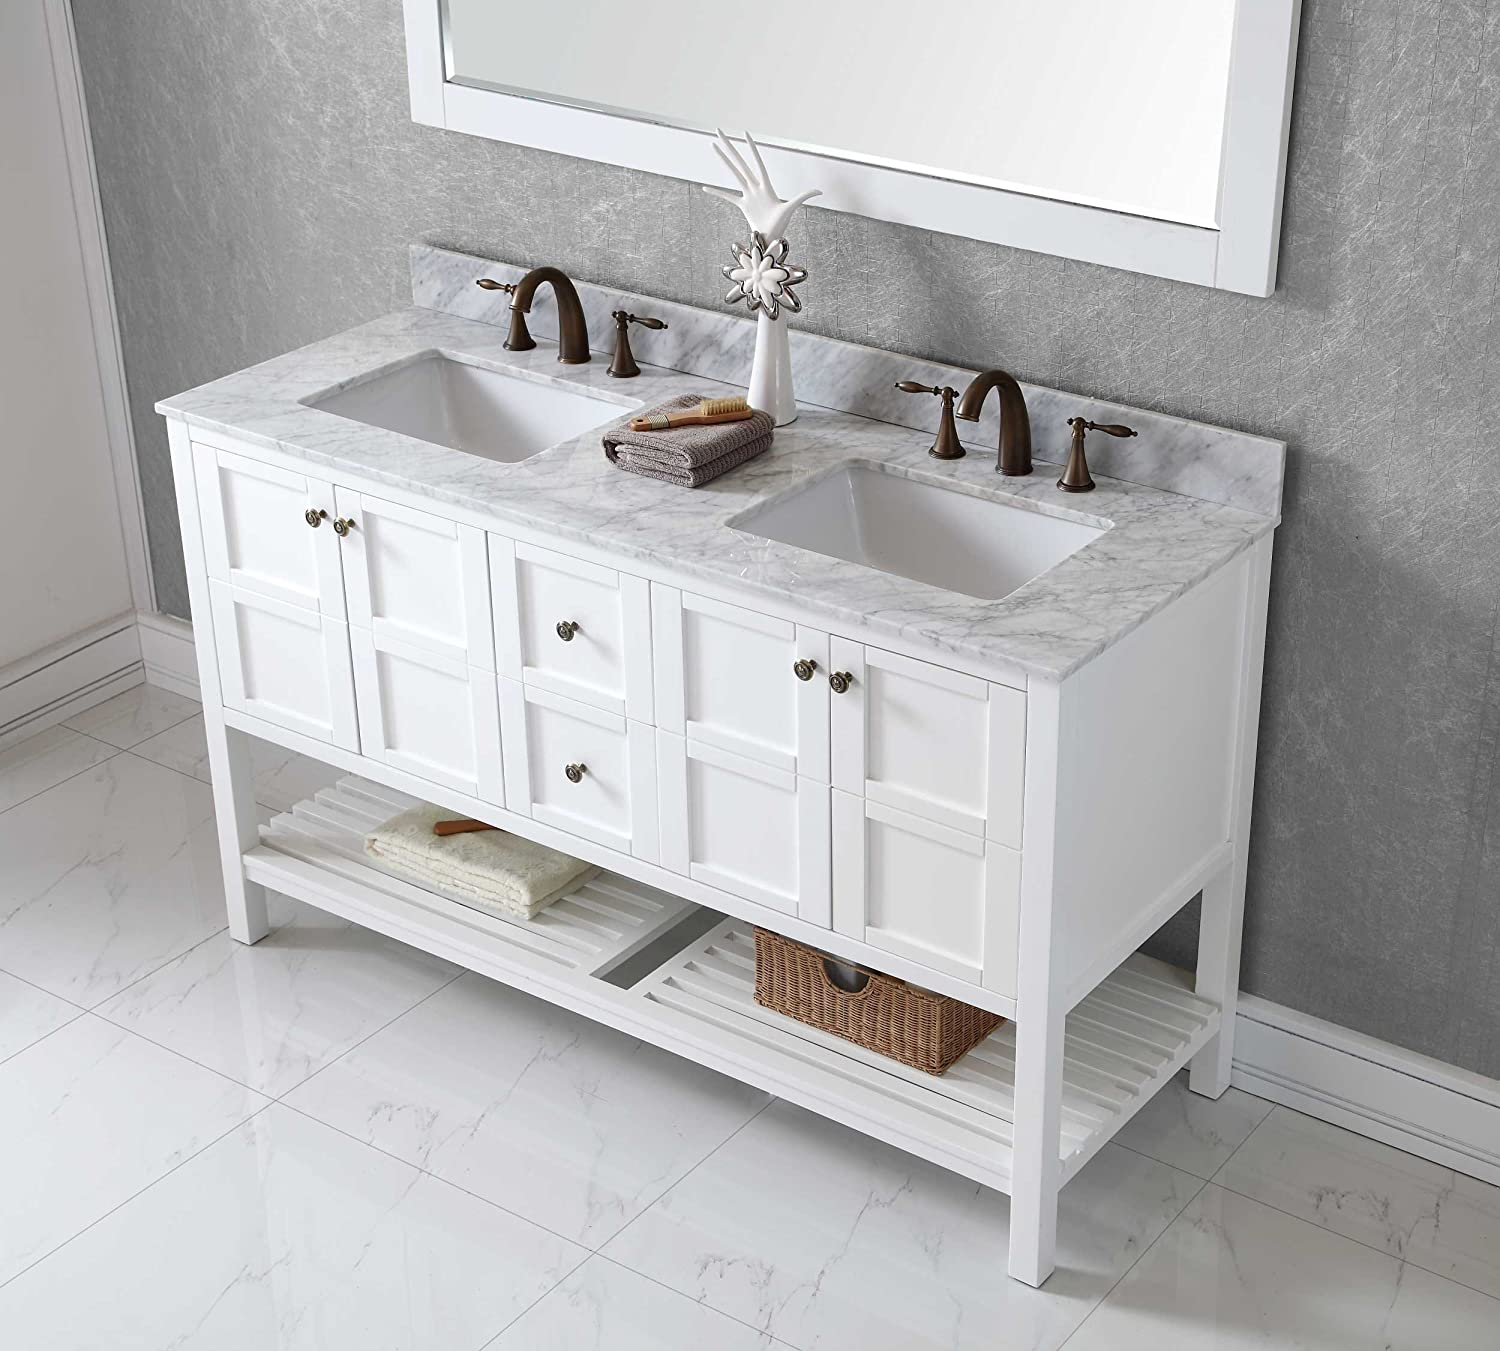 bathroom sink vanity cabinet. Virtu ED 30060 WMSQ WH Winterfell Double Bathroom Vanity Cabinet Set  60 White Amazon com